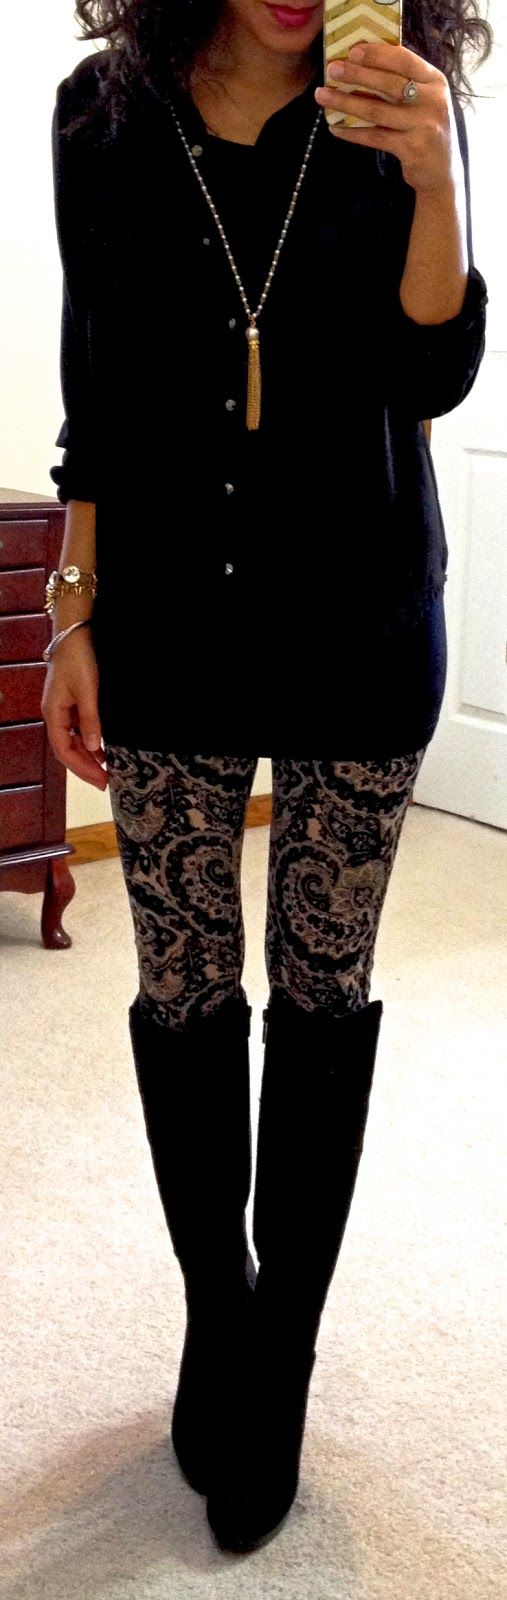 Printed tights + over the knee boots.